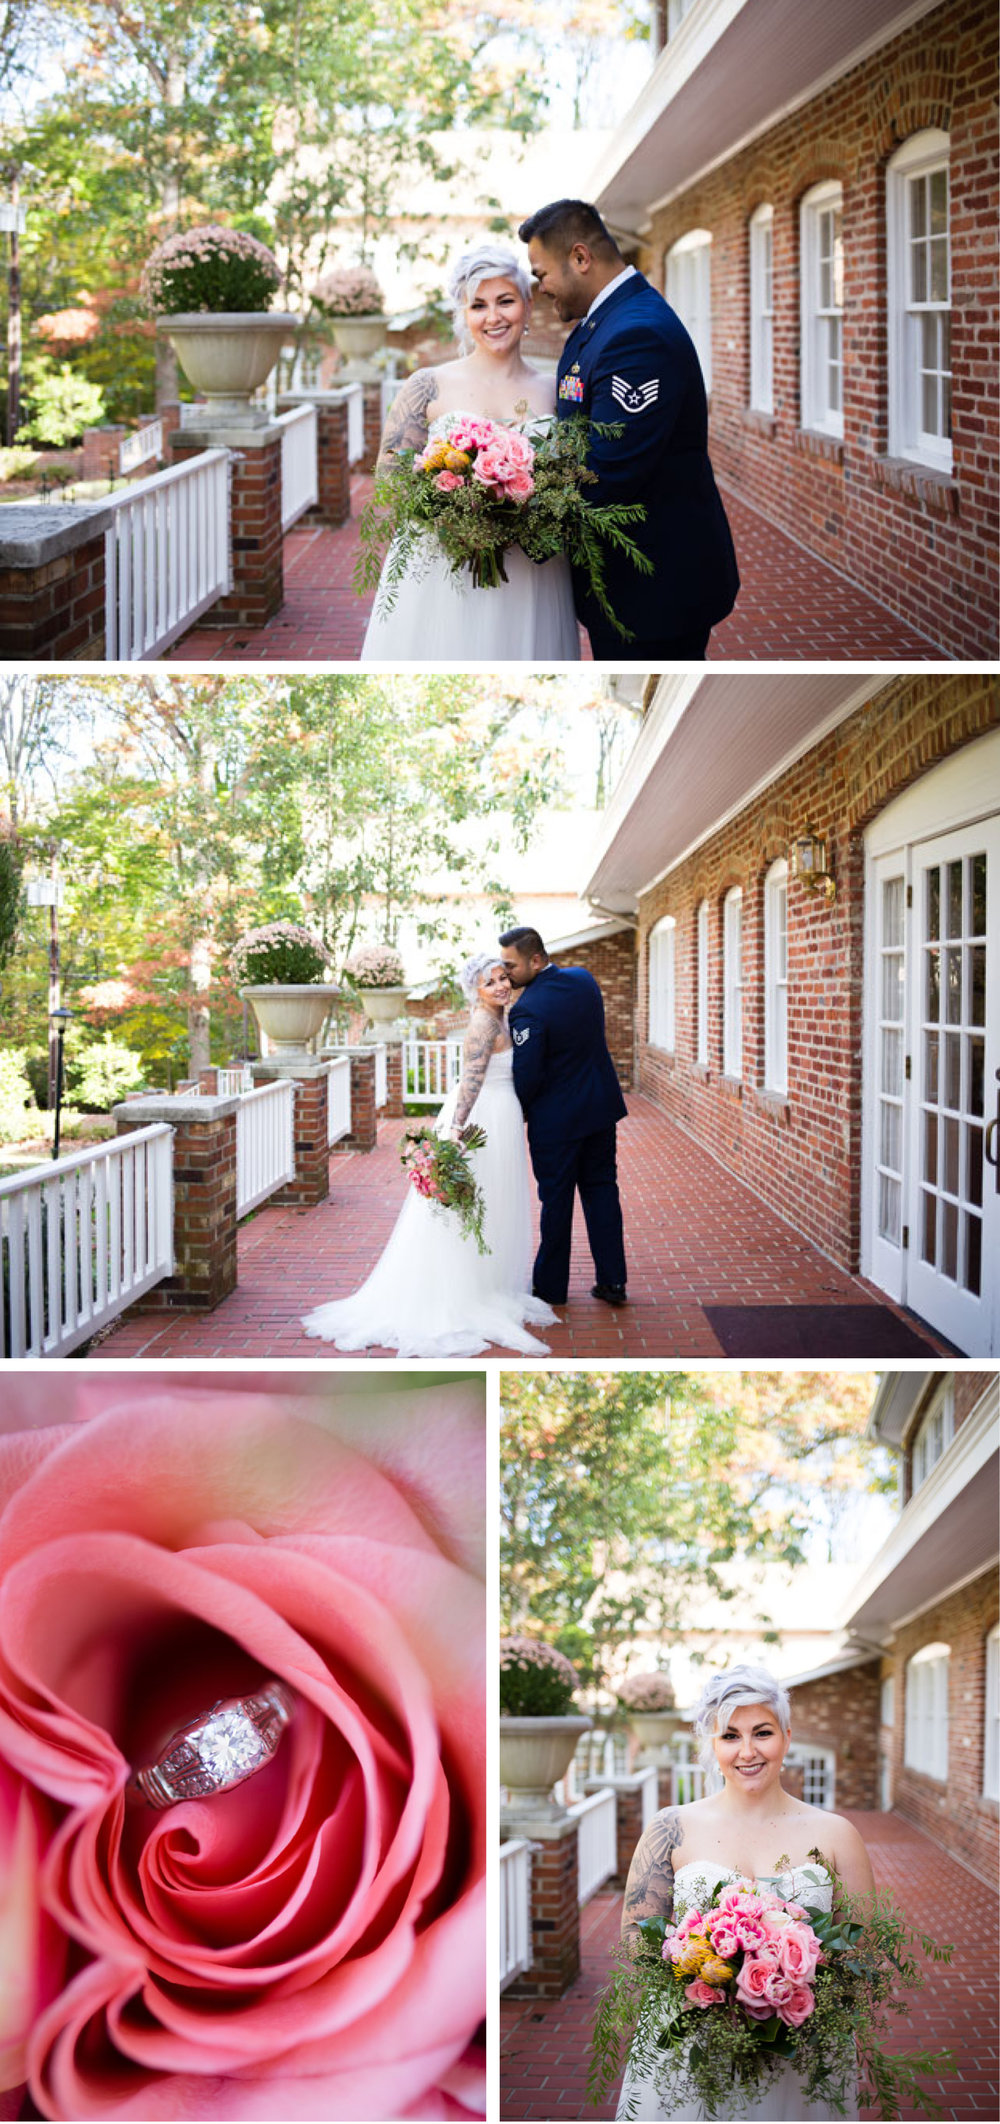 Raspberry-and-Gold-Vow-Renewal_Styled-Shoot-DC-Wedding3.jpg